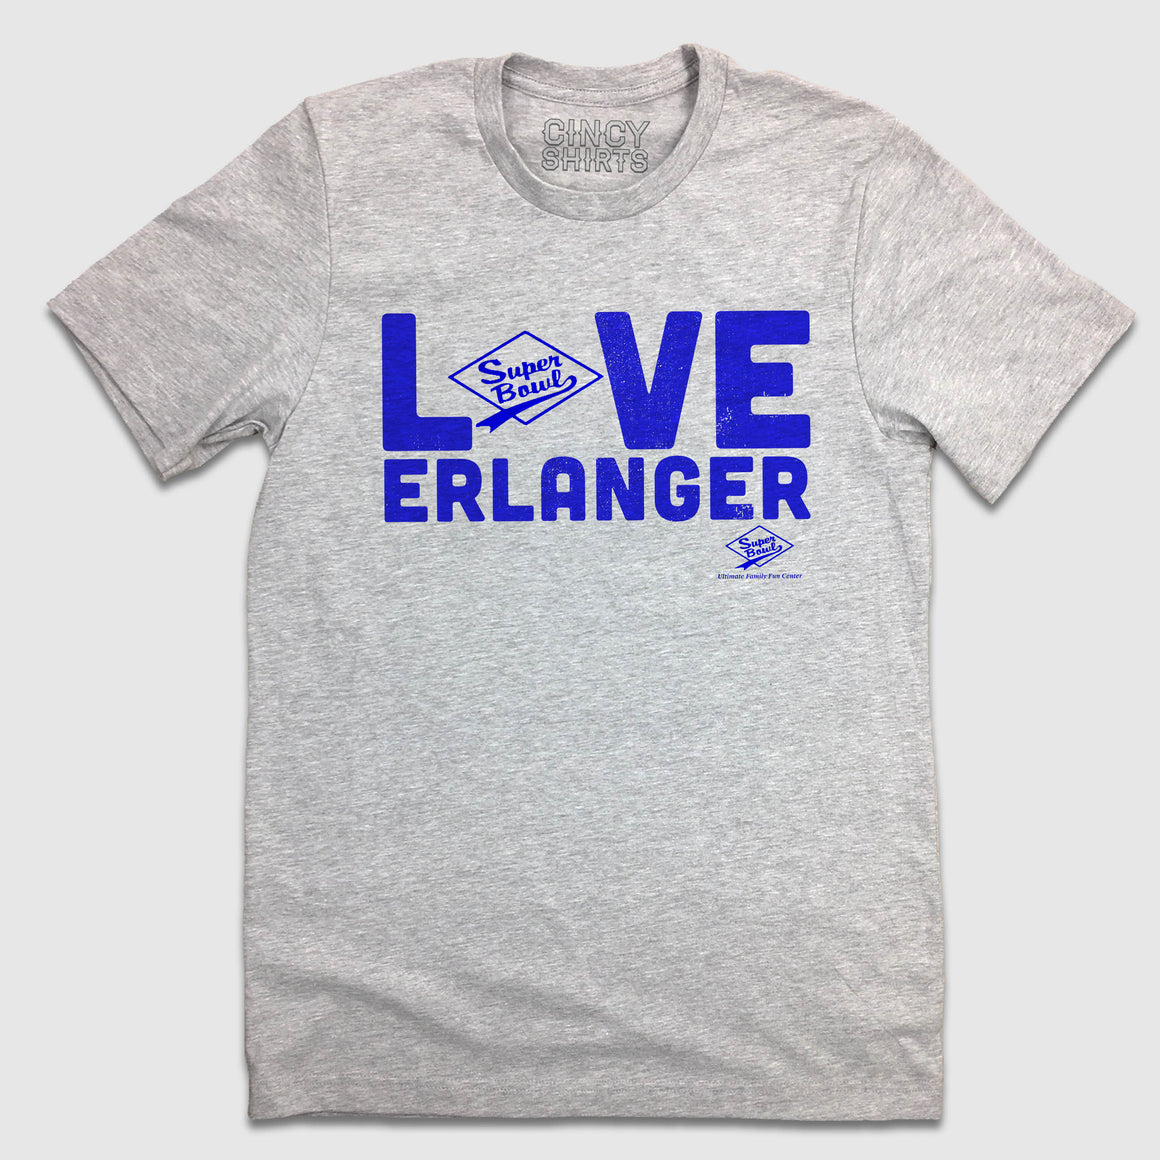 Love Erlanger - Super Bowl - Cincy Shirts